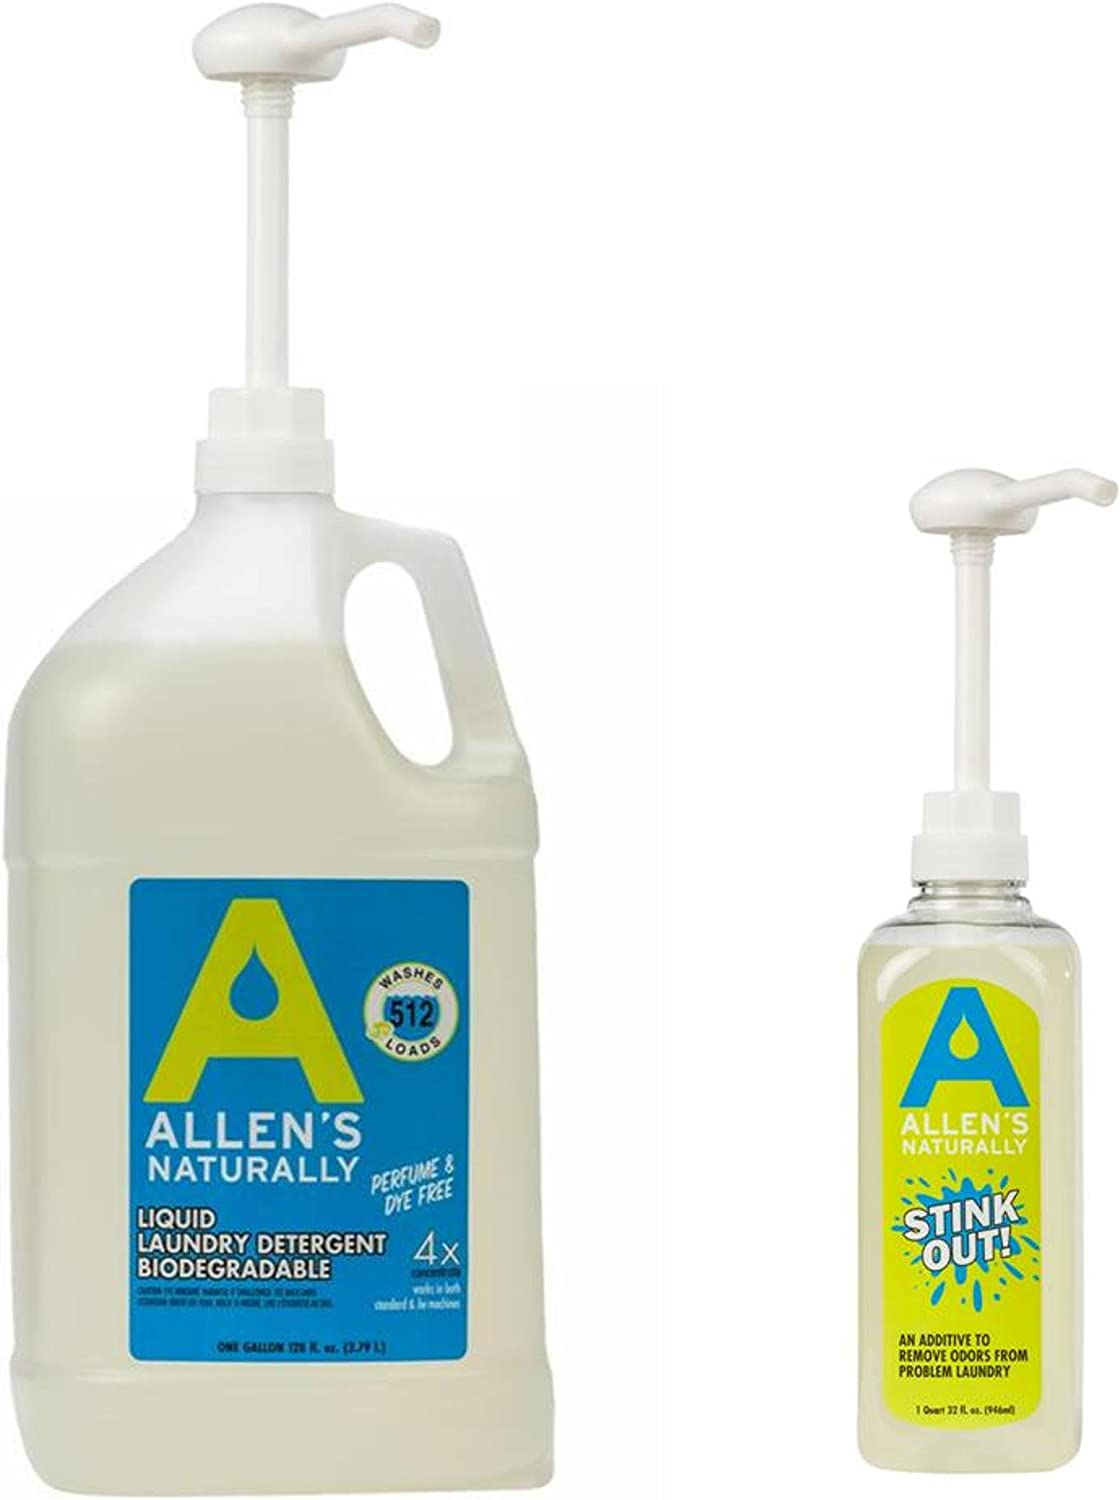 Allens Naturally Liquid Soap Laundry Detergent 1 Gallon/ 128 fl oz/ 3.78 Liters + Stink Out 1 quart/ 32 fl oz./ 946 ml + Dispensing Pump